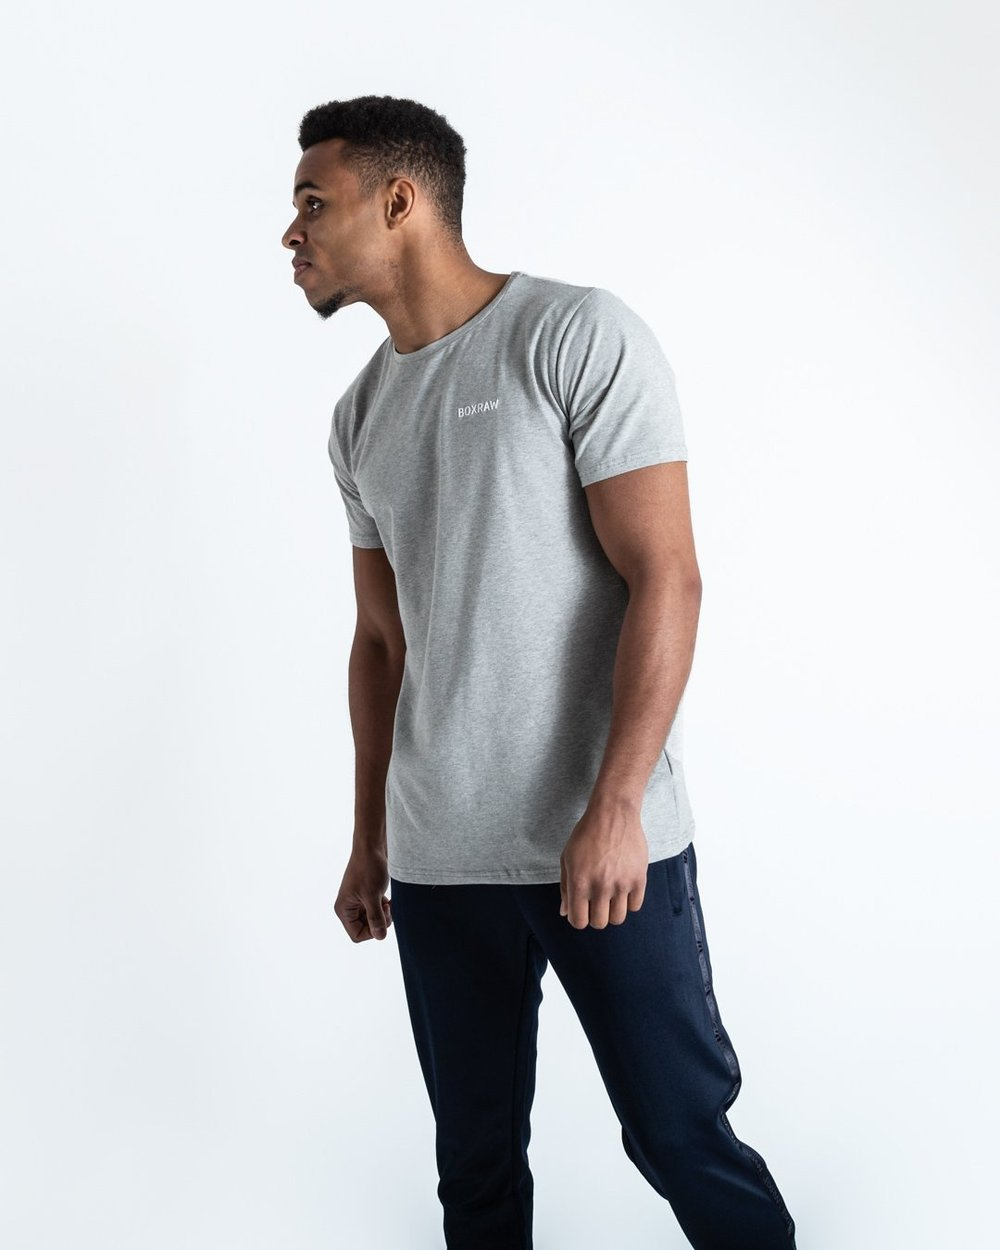 BOXRAW LOGO T-SHIRT - GREY